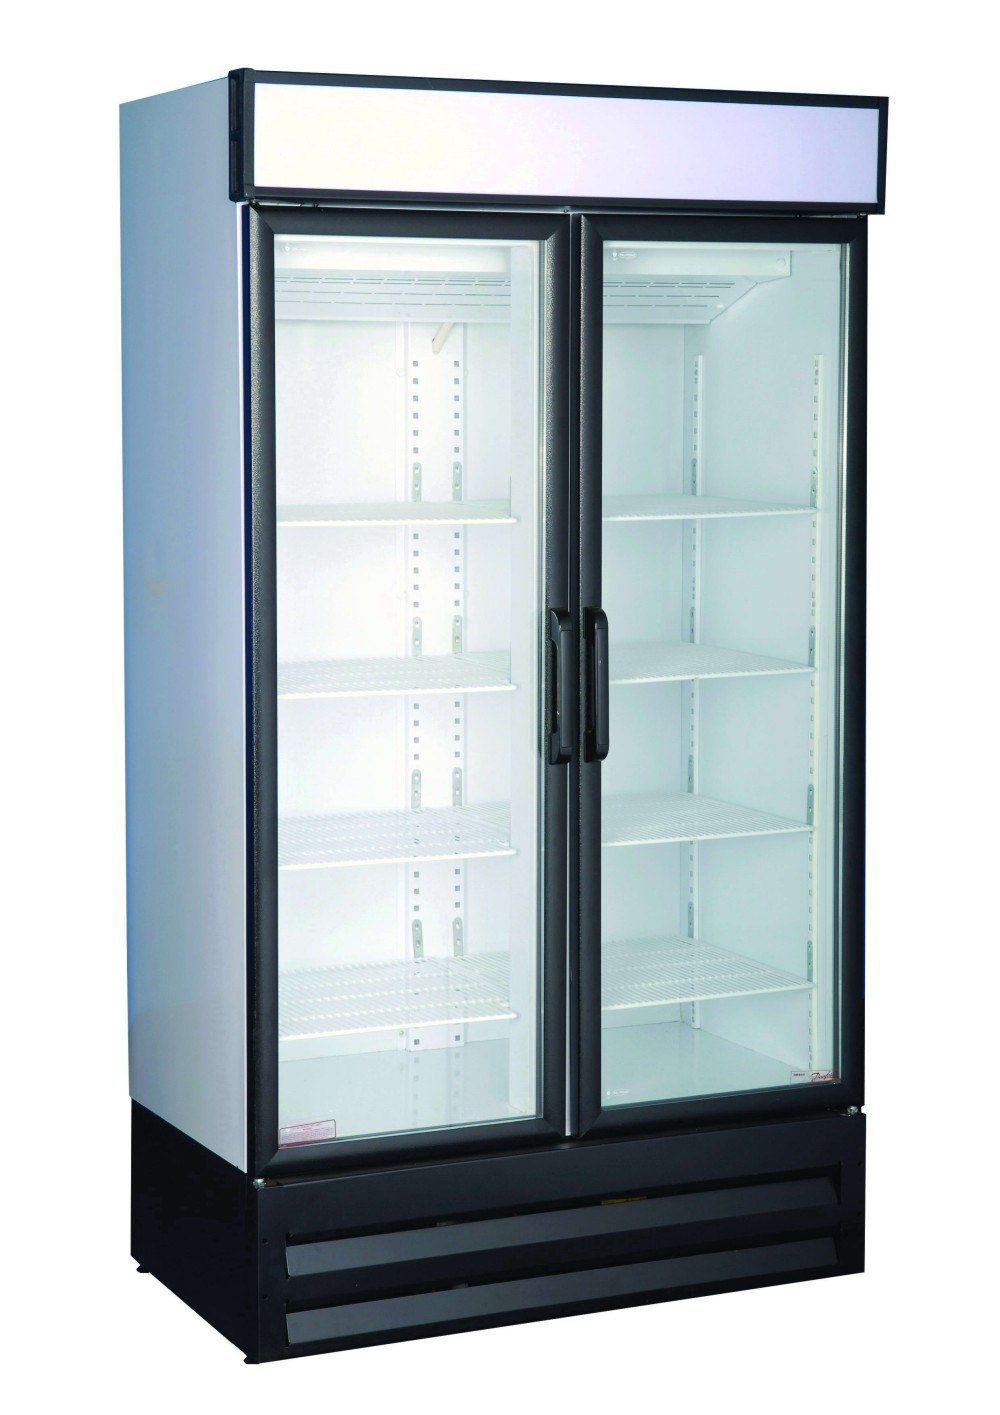 Cool Solutions: BEVERAGE COOLER DOUBLE GLASS DOOR SWING